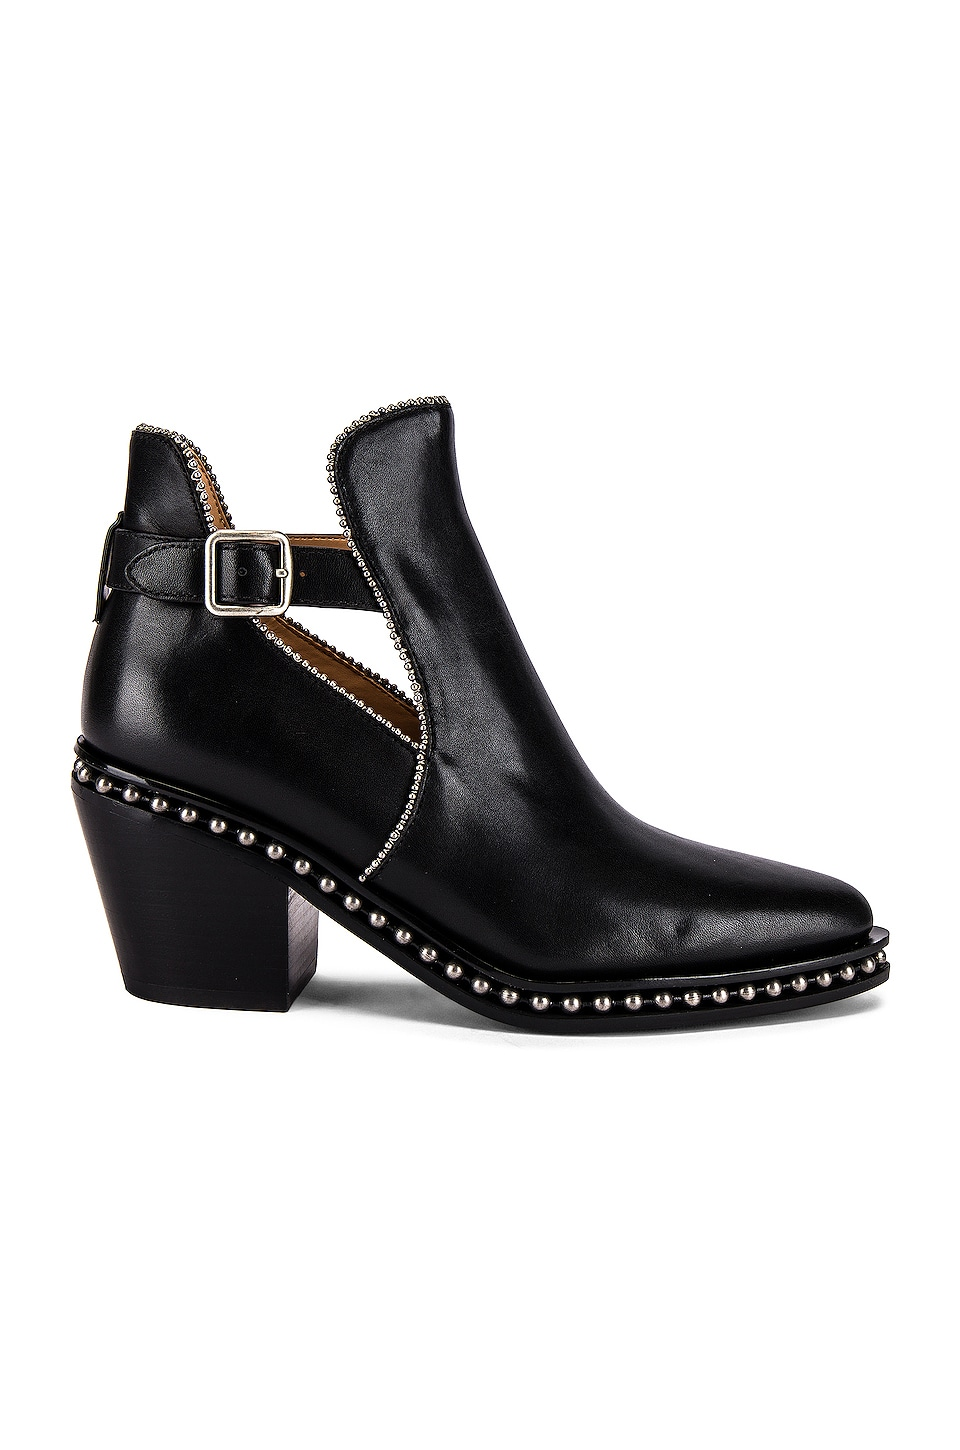 Coach 1941 Pipa Beadchain Bootie in Black